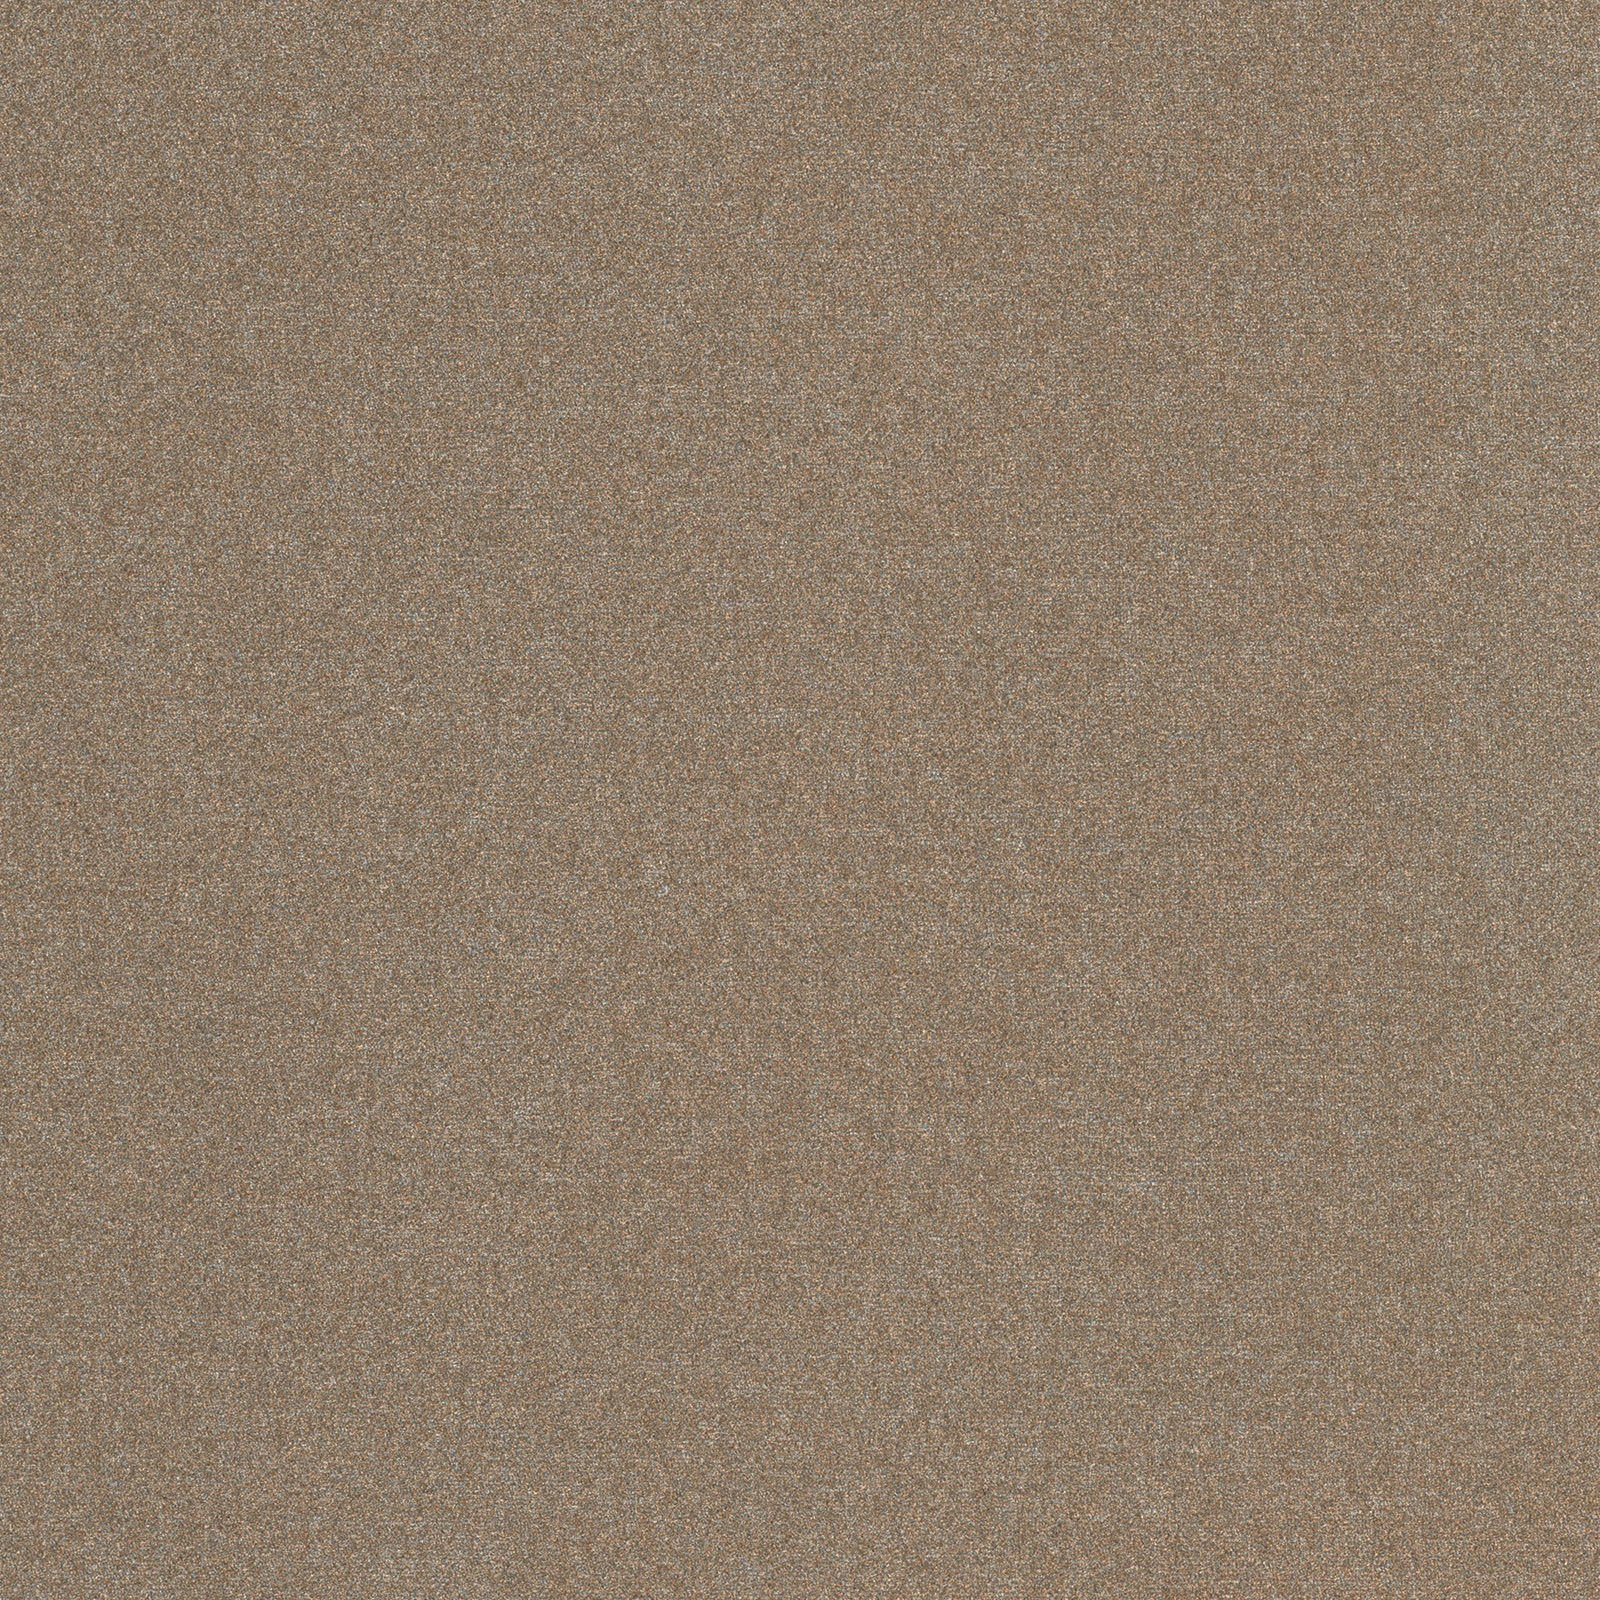 EESC-M1000 A - STARLIGHT METALLICS BY MAYWOOD STUDIO ANTIQUE BRASS - AVAILABLE TO ORDER